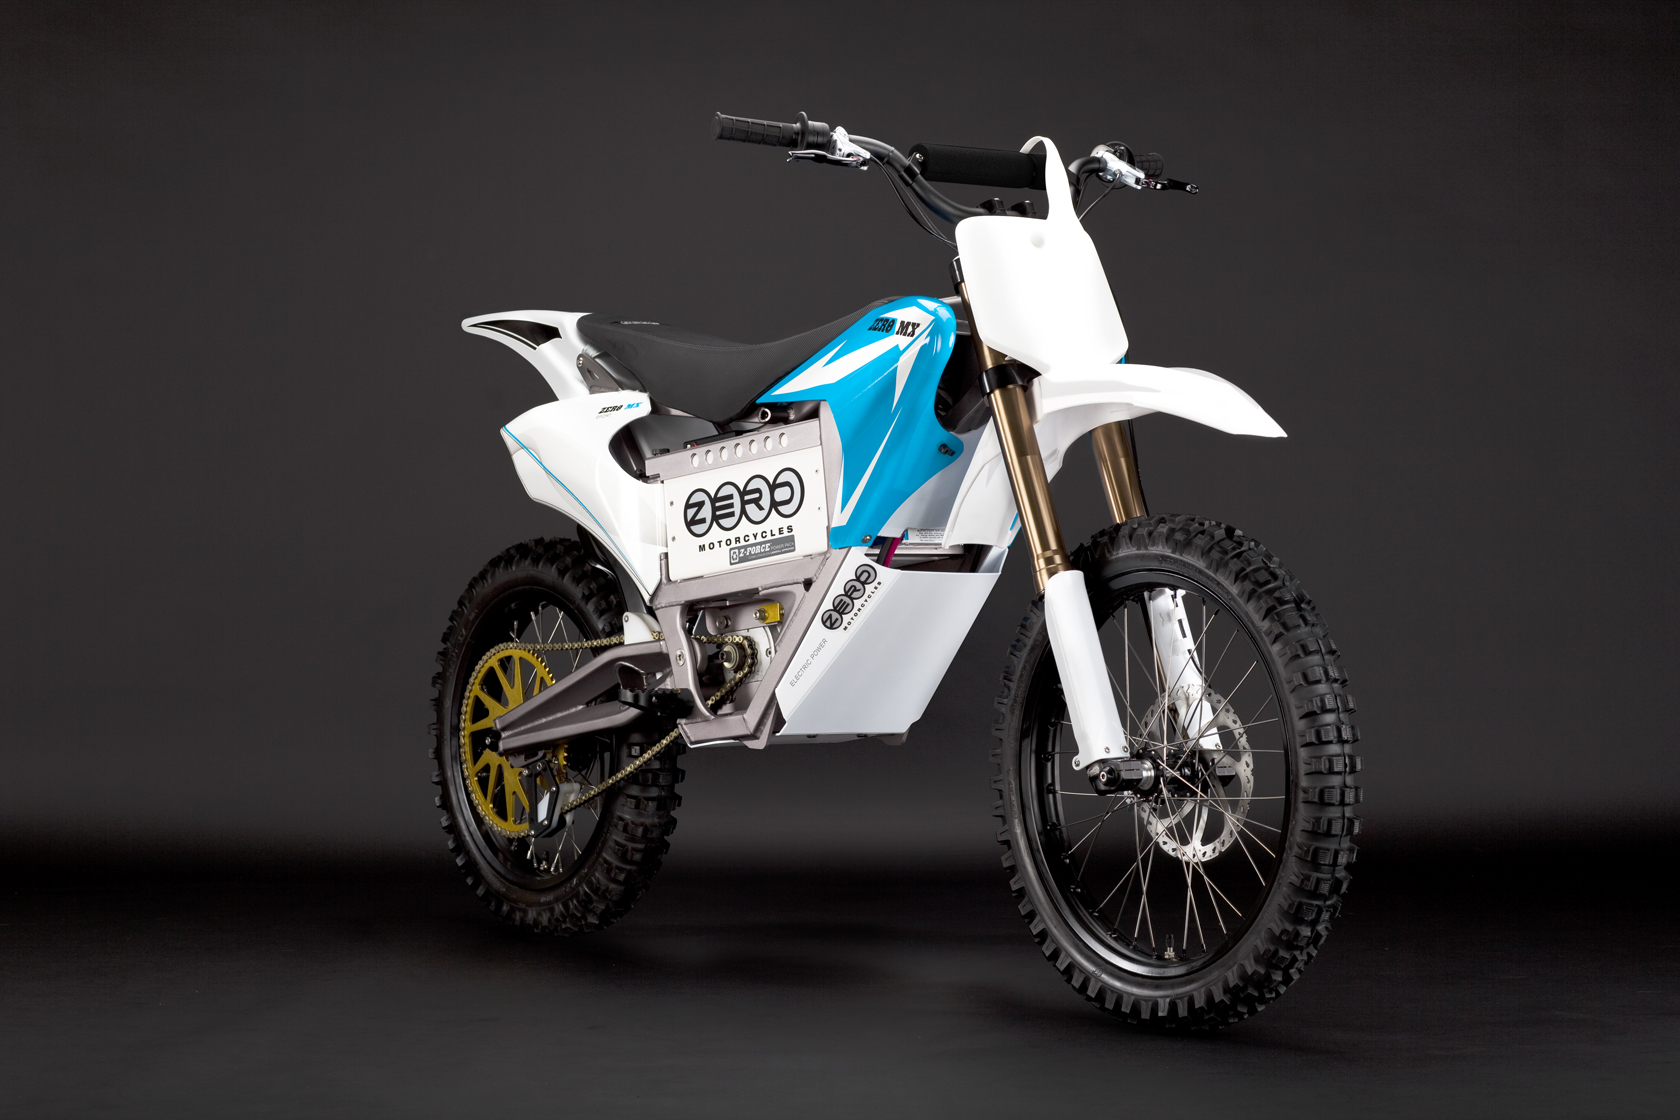 2010 Zero MX Electric Motorcycle: Blue Angle